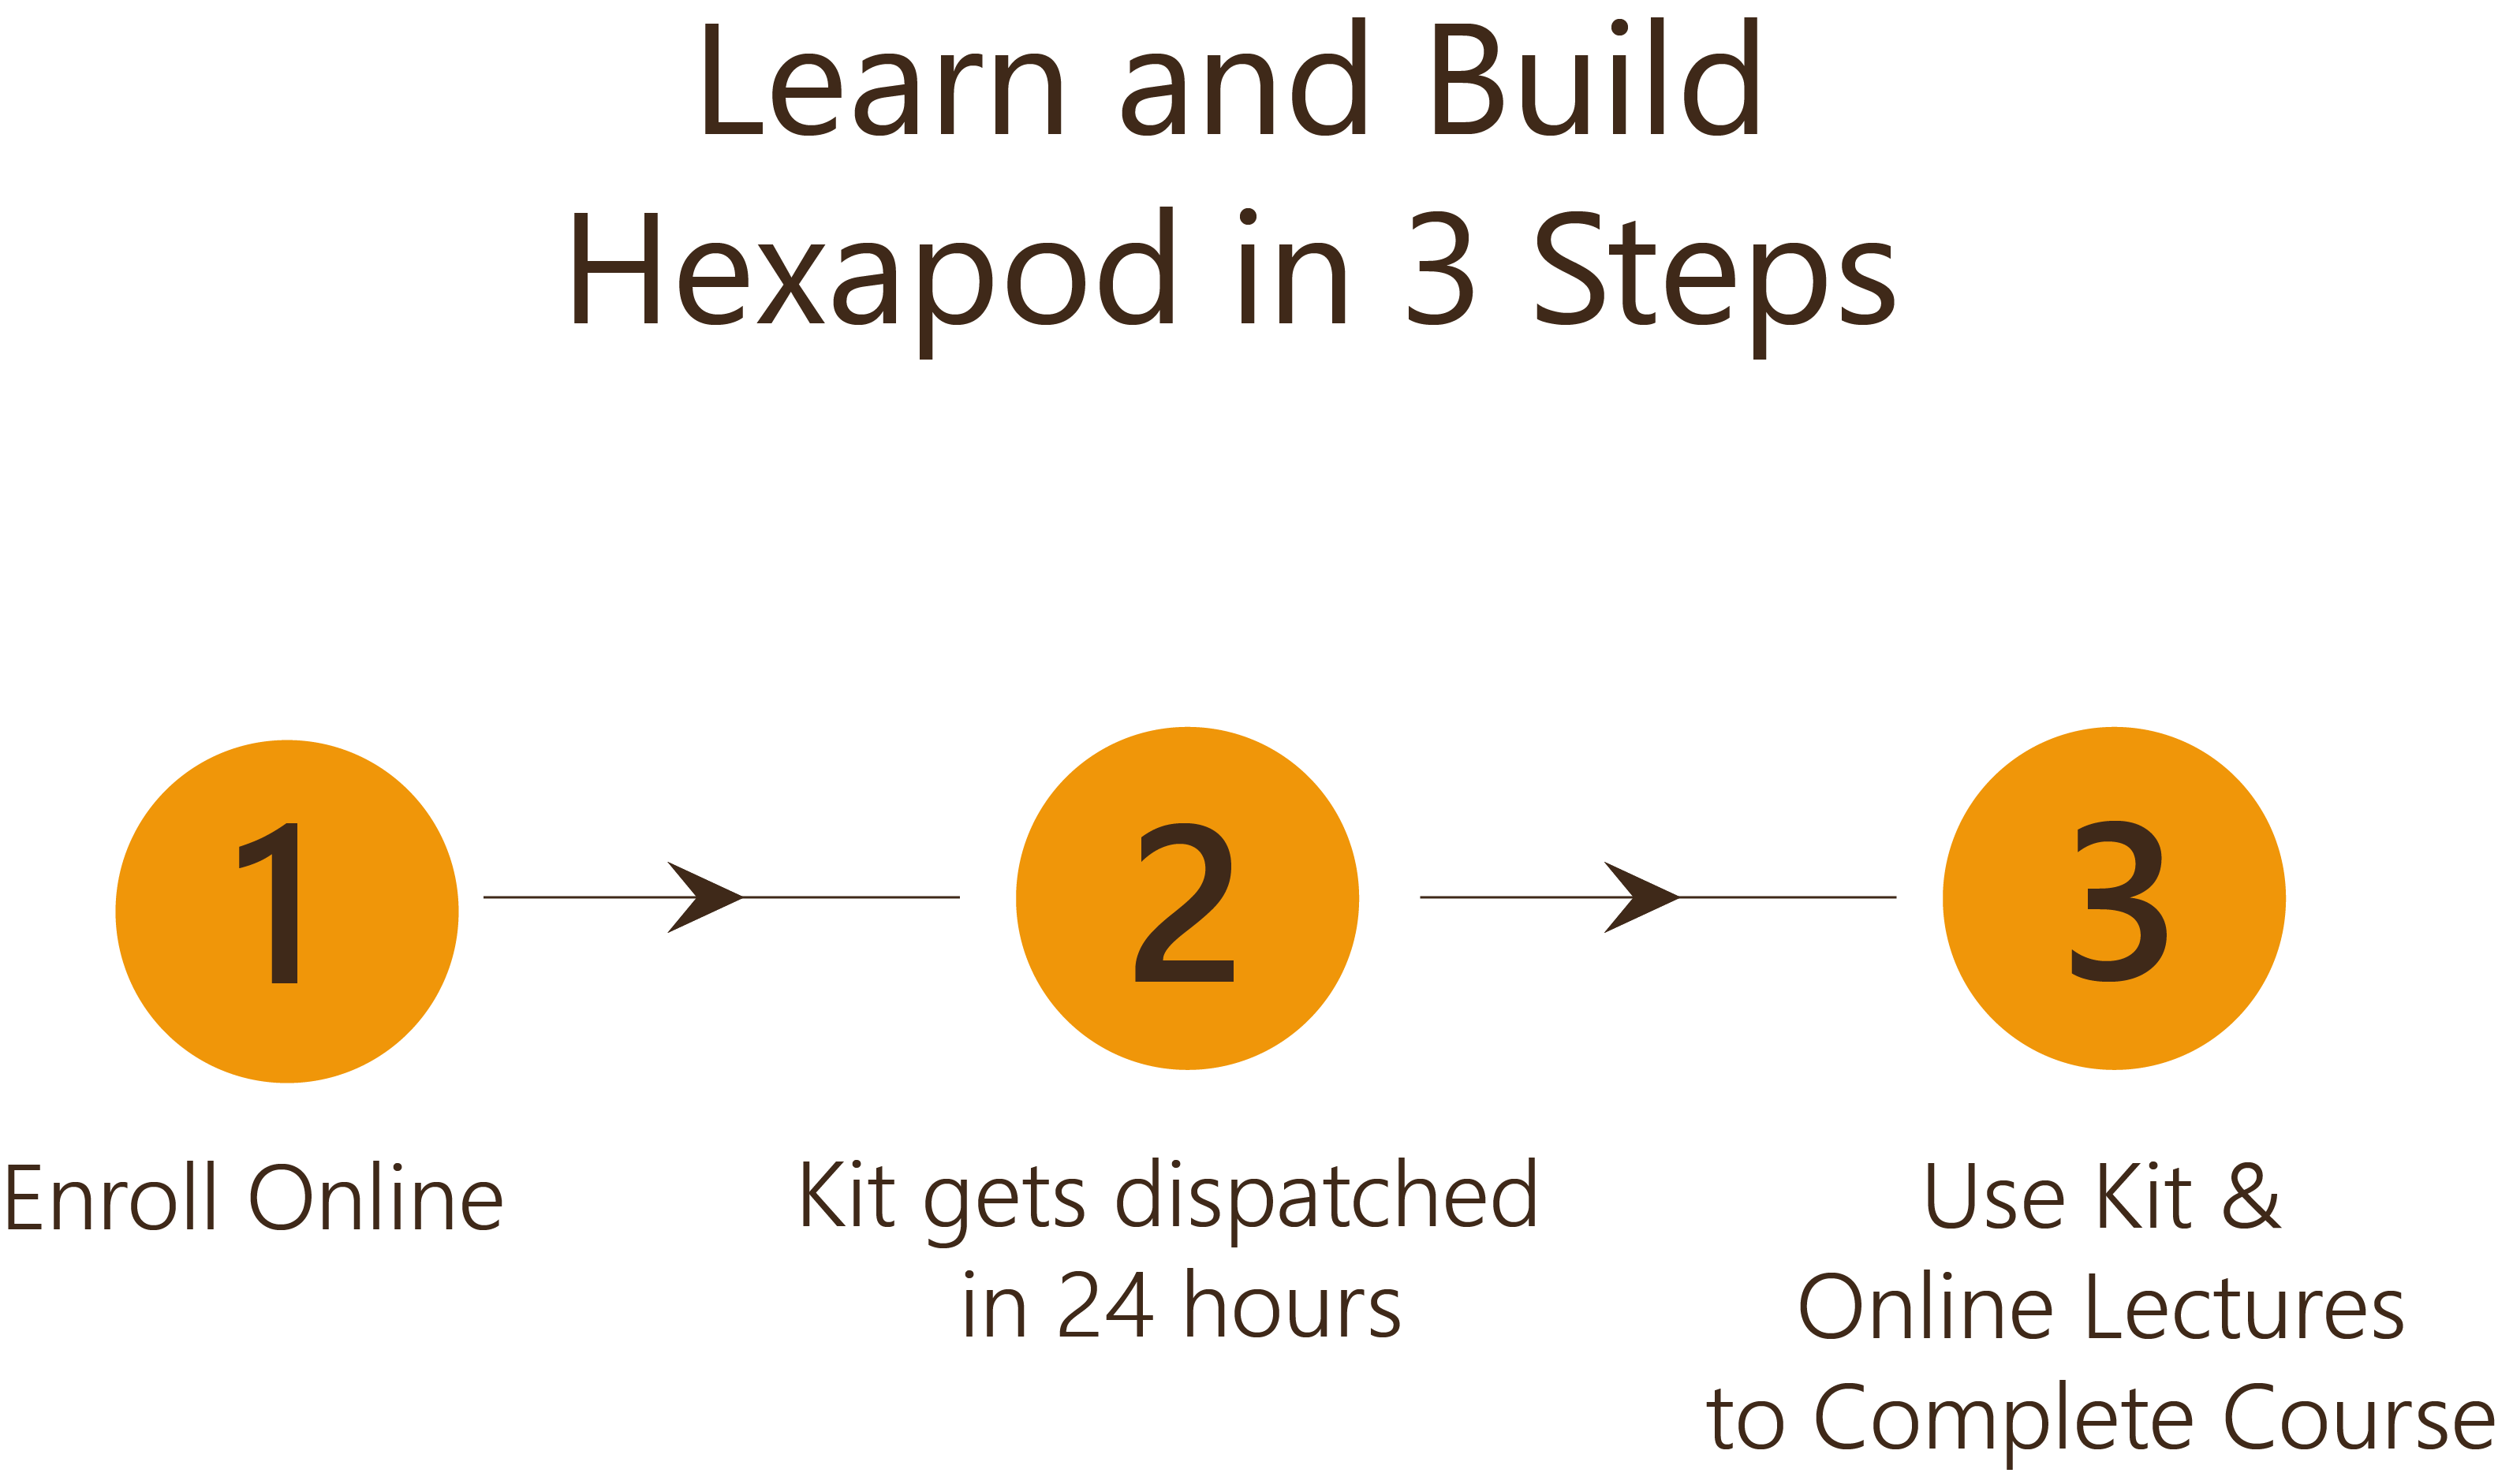 Learn and Build Hexapod in 3 Steps